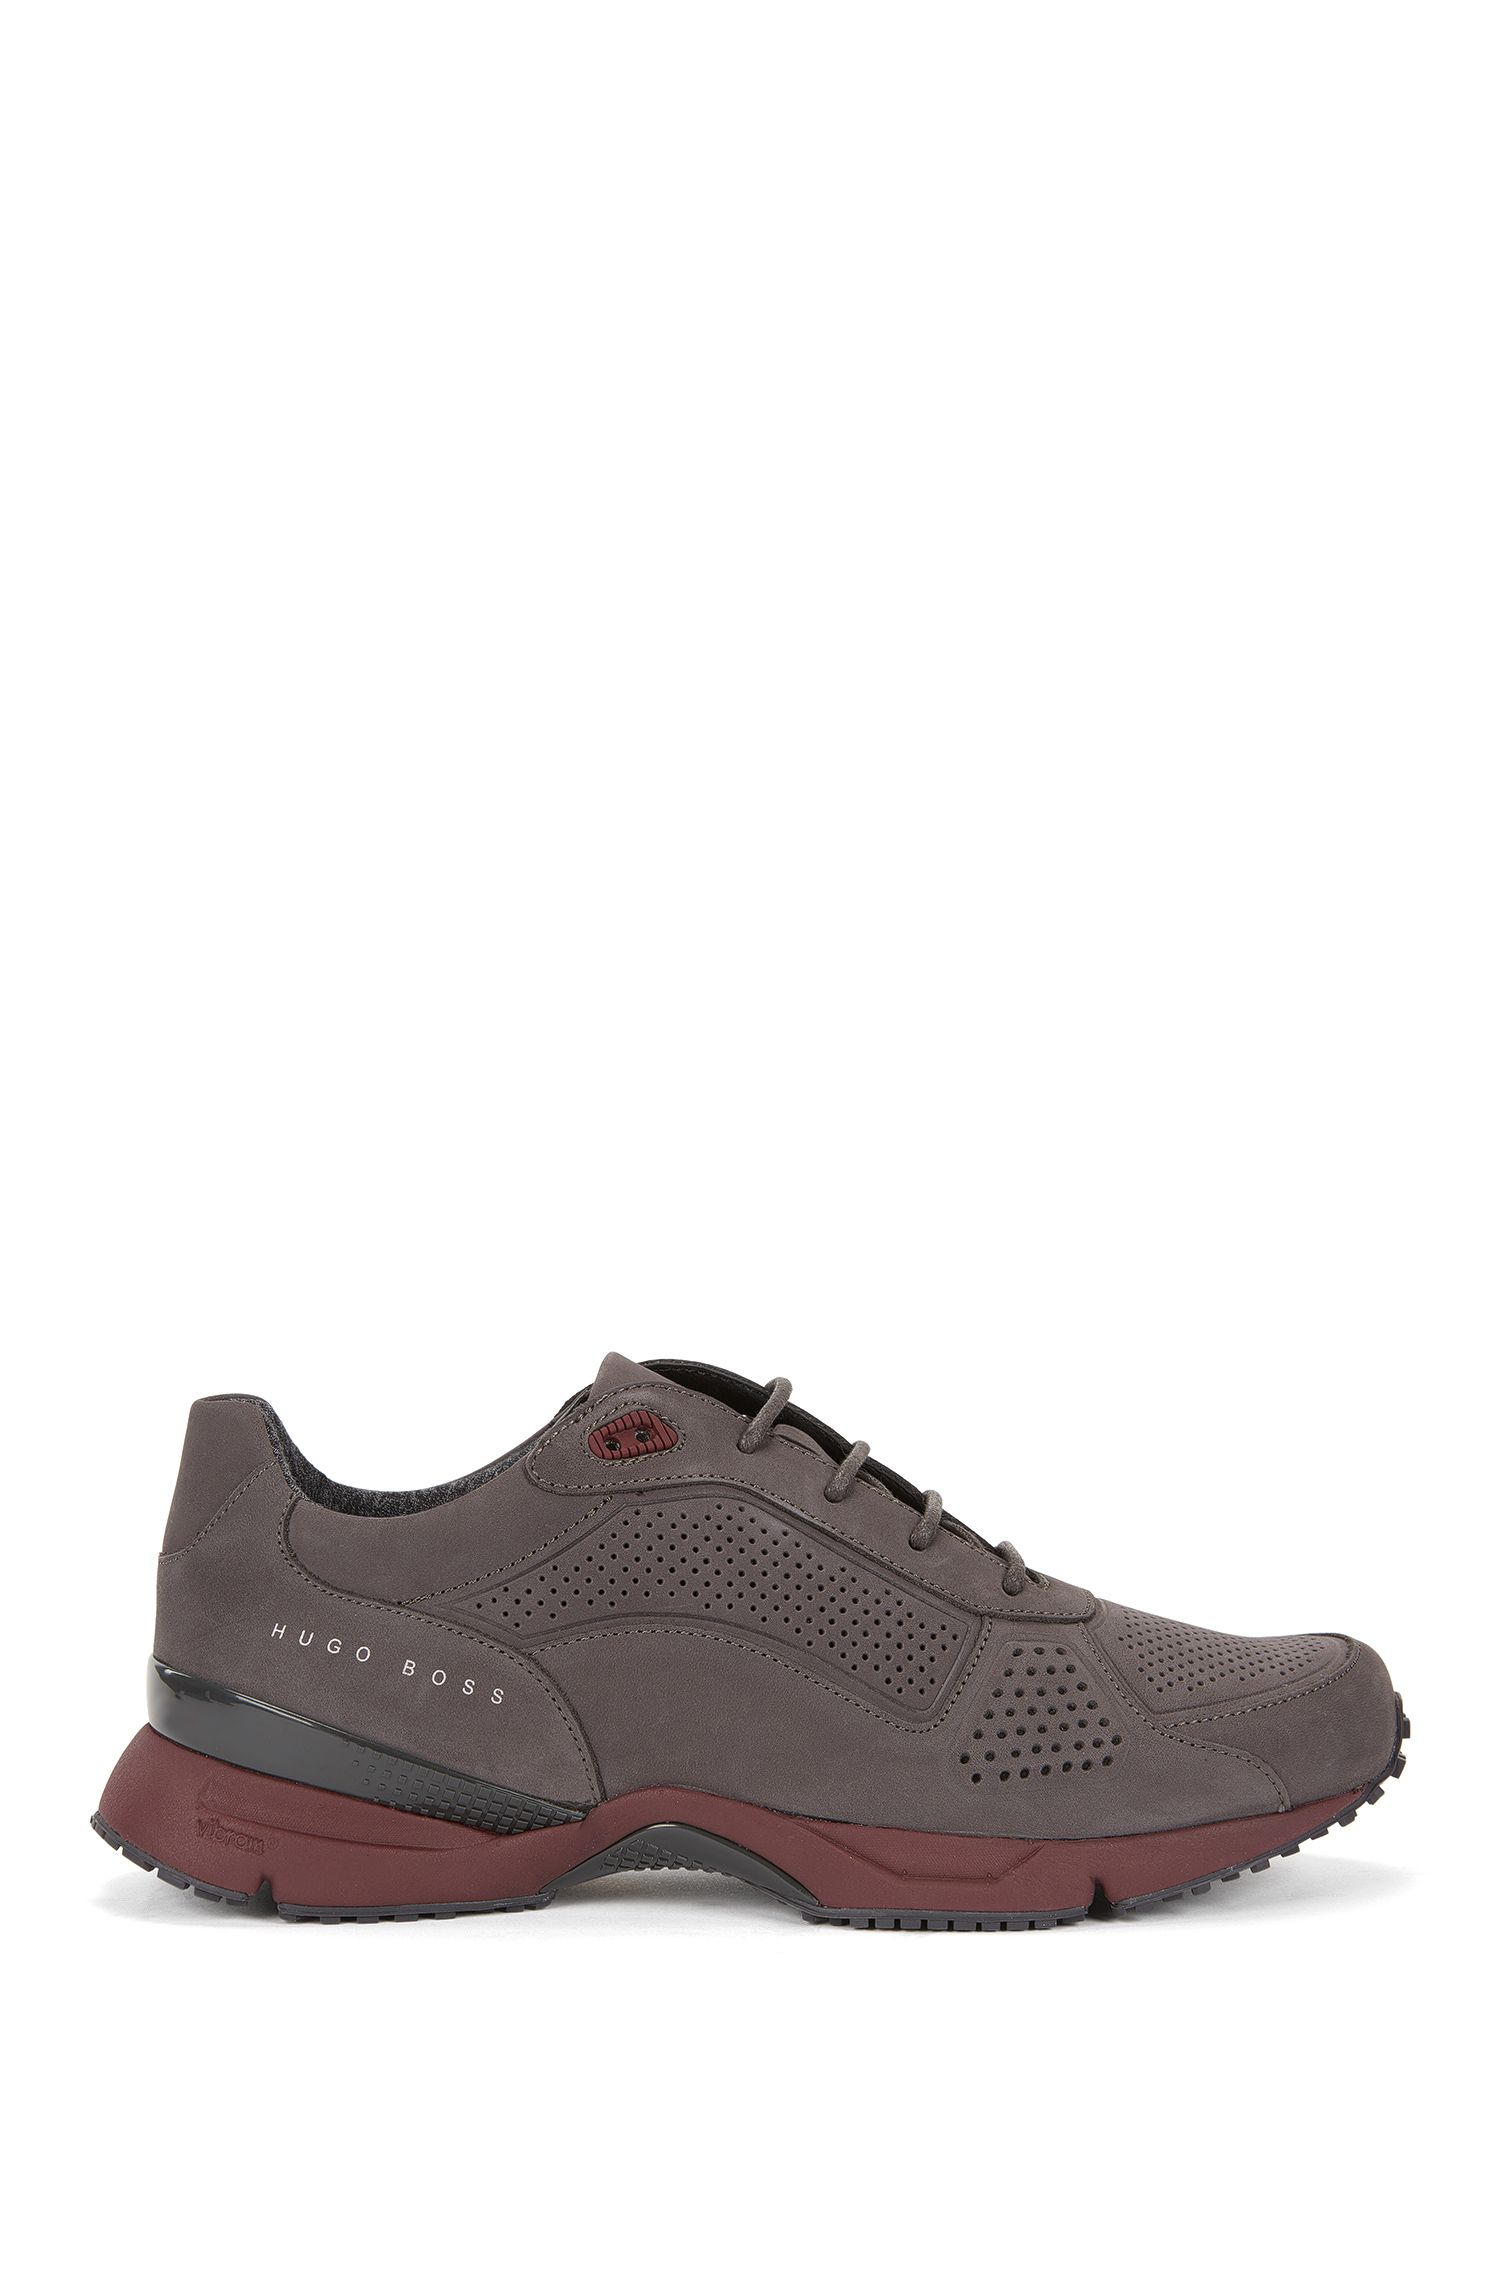 Perforated Suede Sneaker | Velocity Runn Nupf